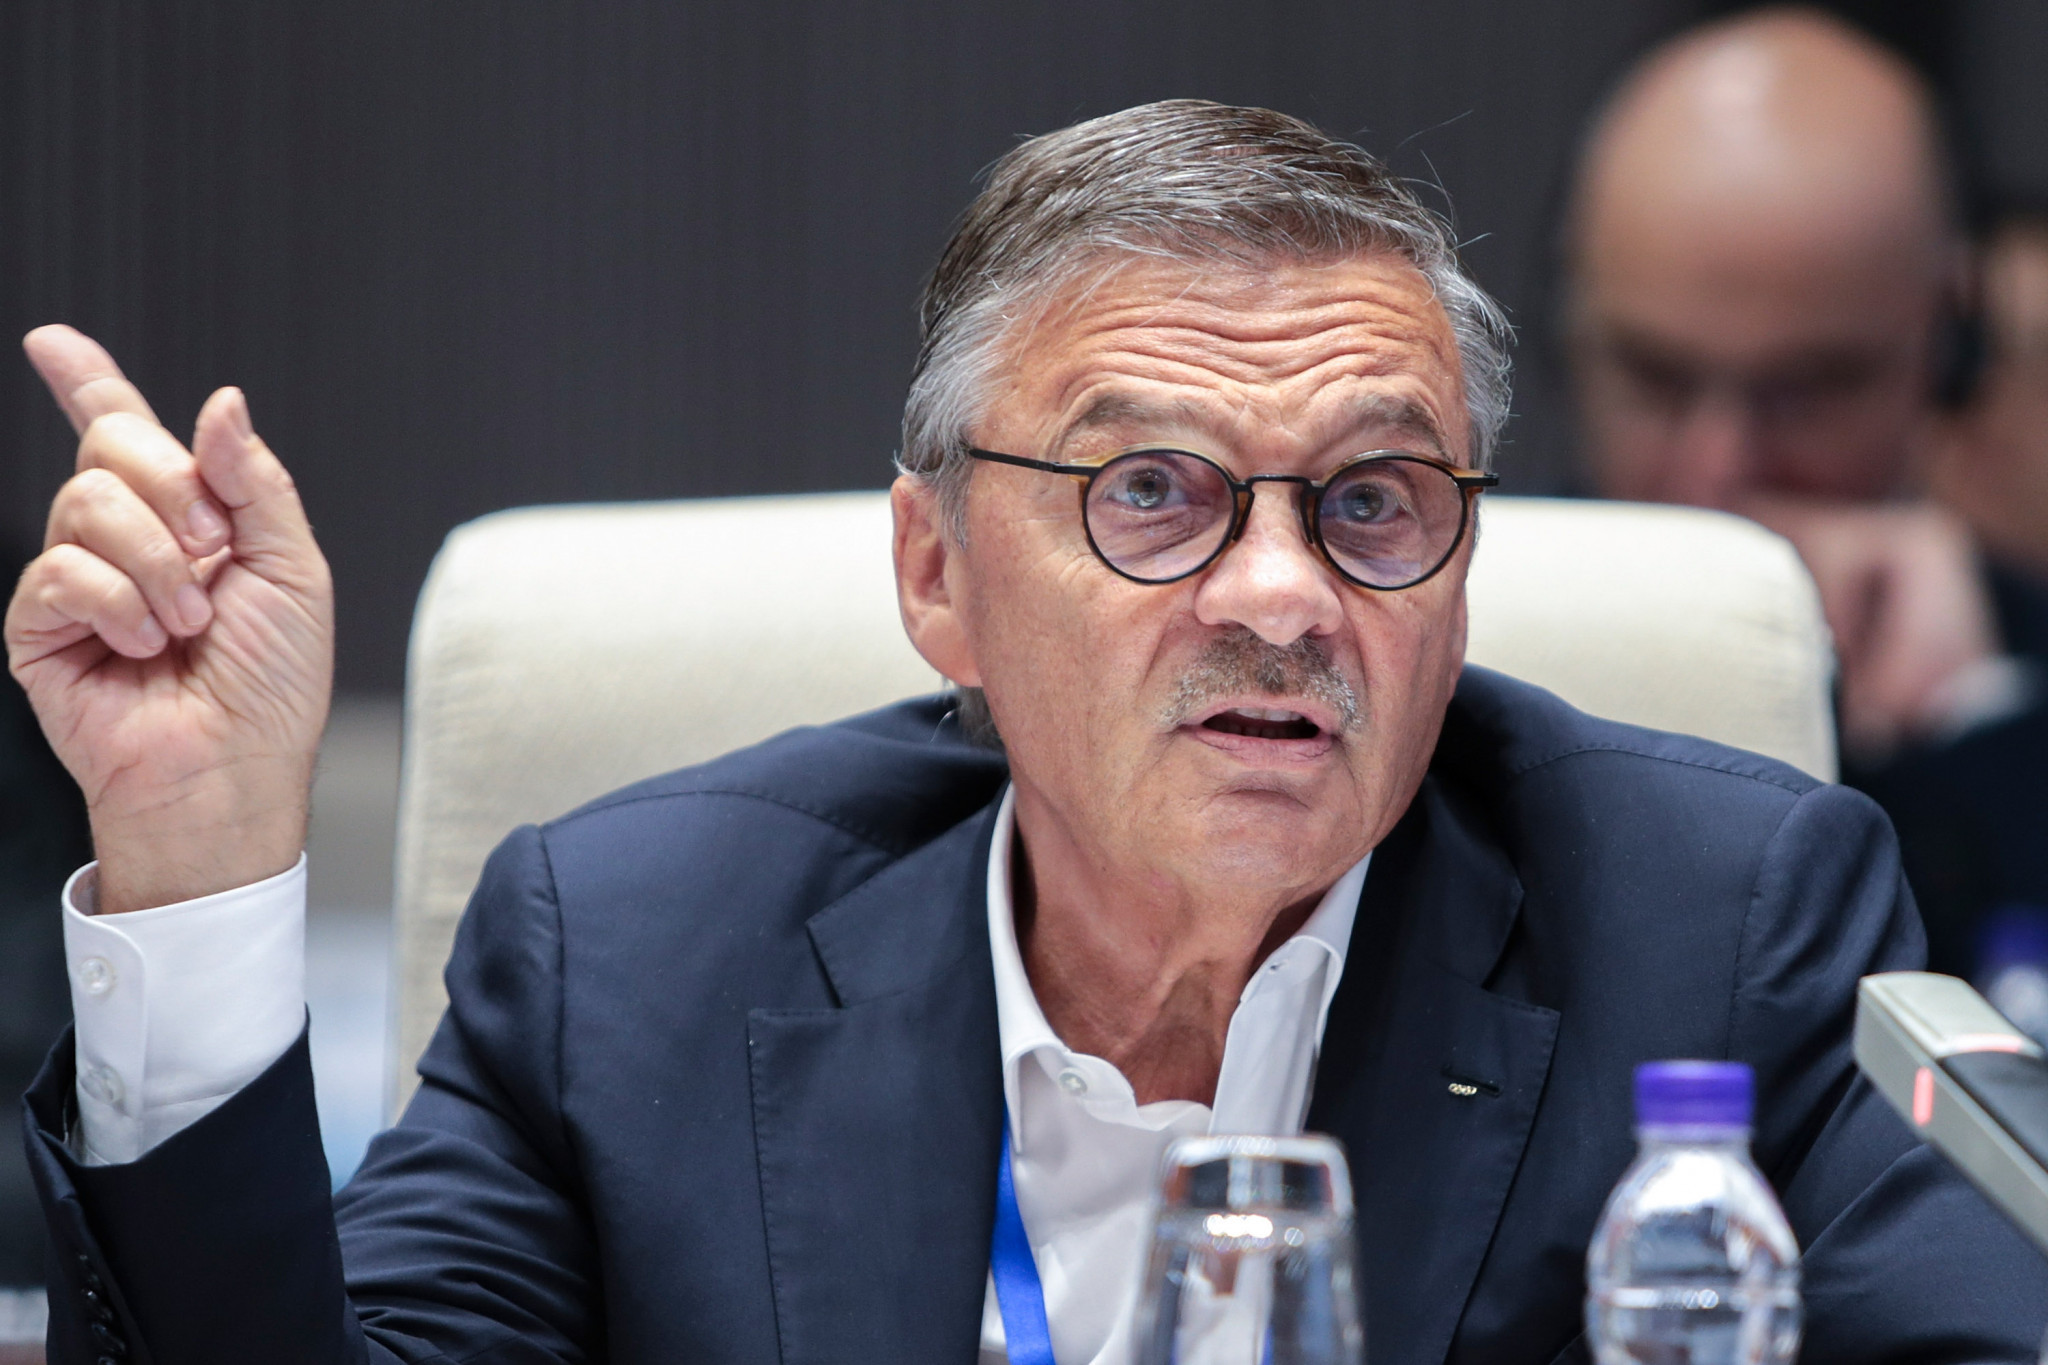 IIHF President René Fasel has admitted the organisation is in talks with countries which could replace Belarus as co-host for this year's Men's World Championship ©Getty Images